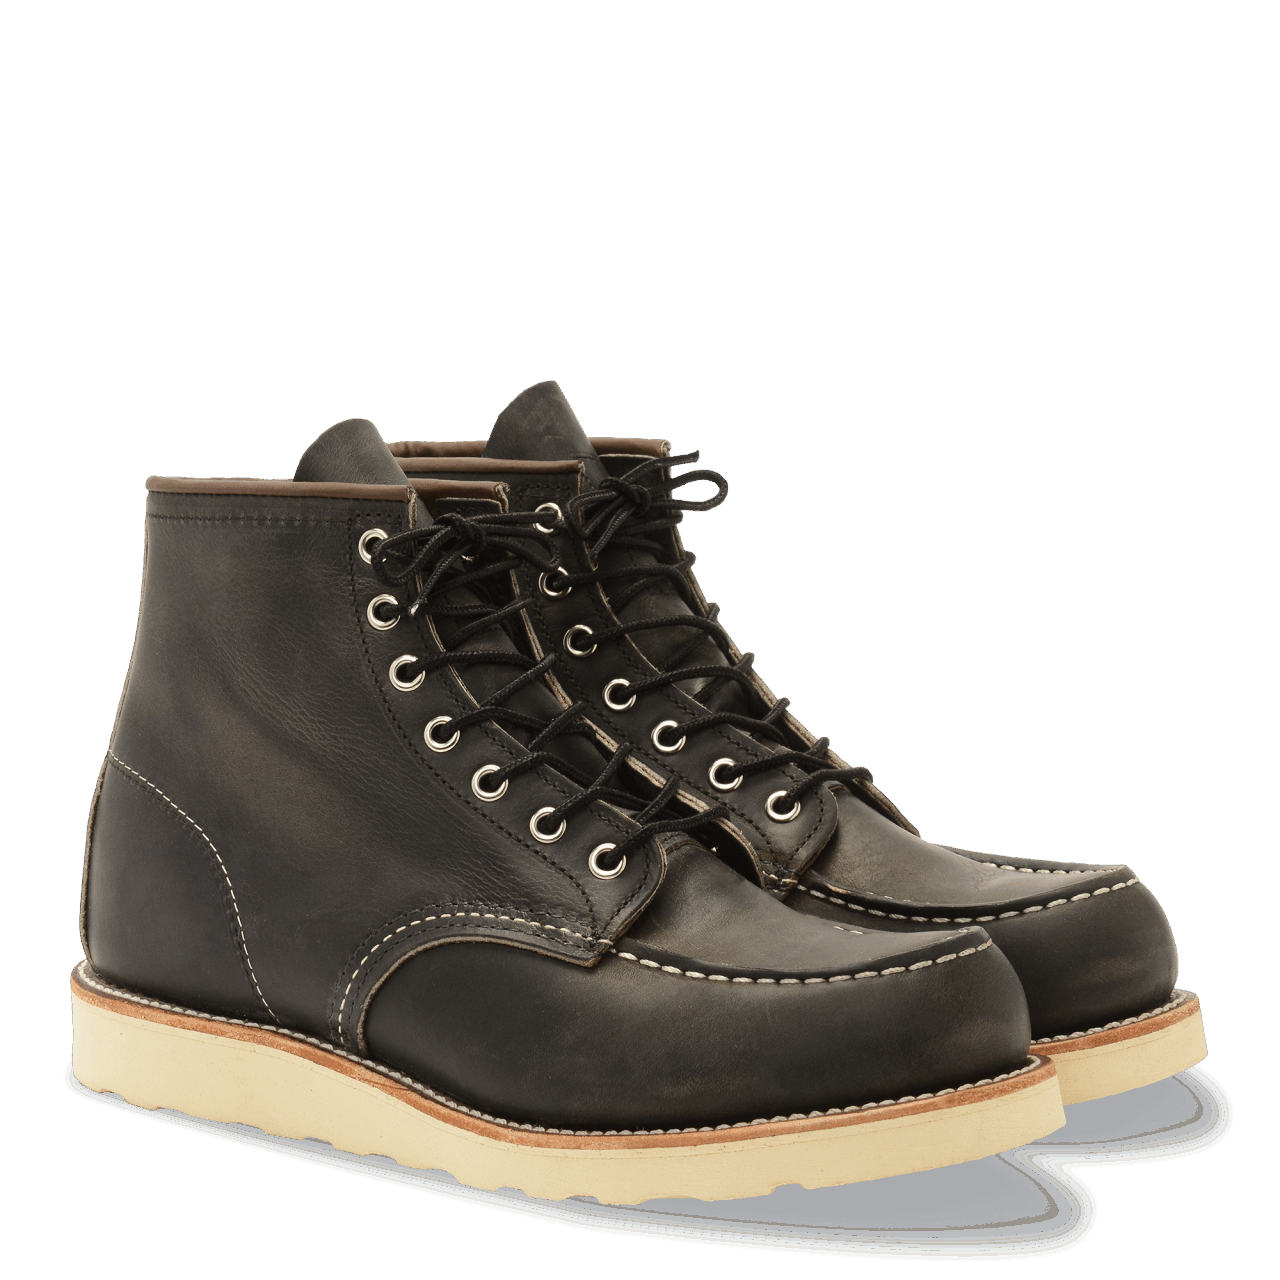 Red Wing 8890 - Charcoal Rough & Tough